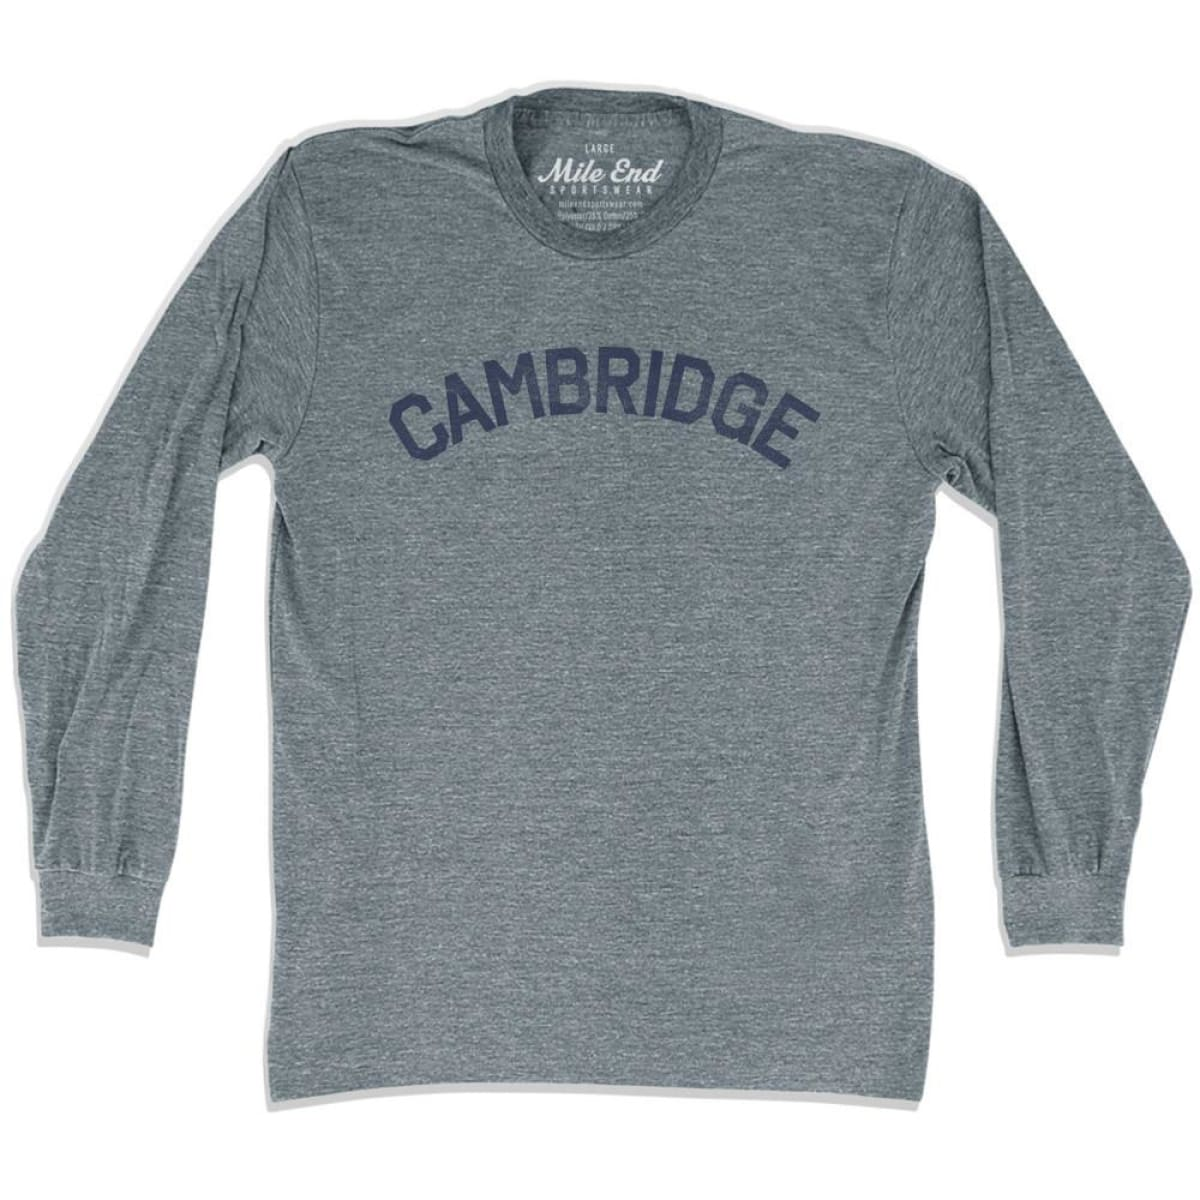 Cambridge City Vintage Long Sleeve T-Shirt - Athletic Grey / Adult X-Small - Mile End City